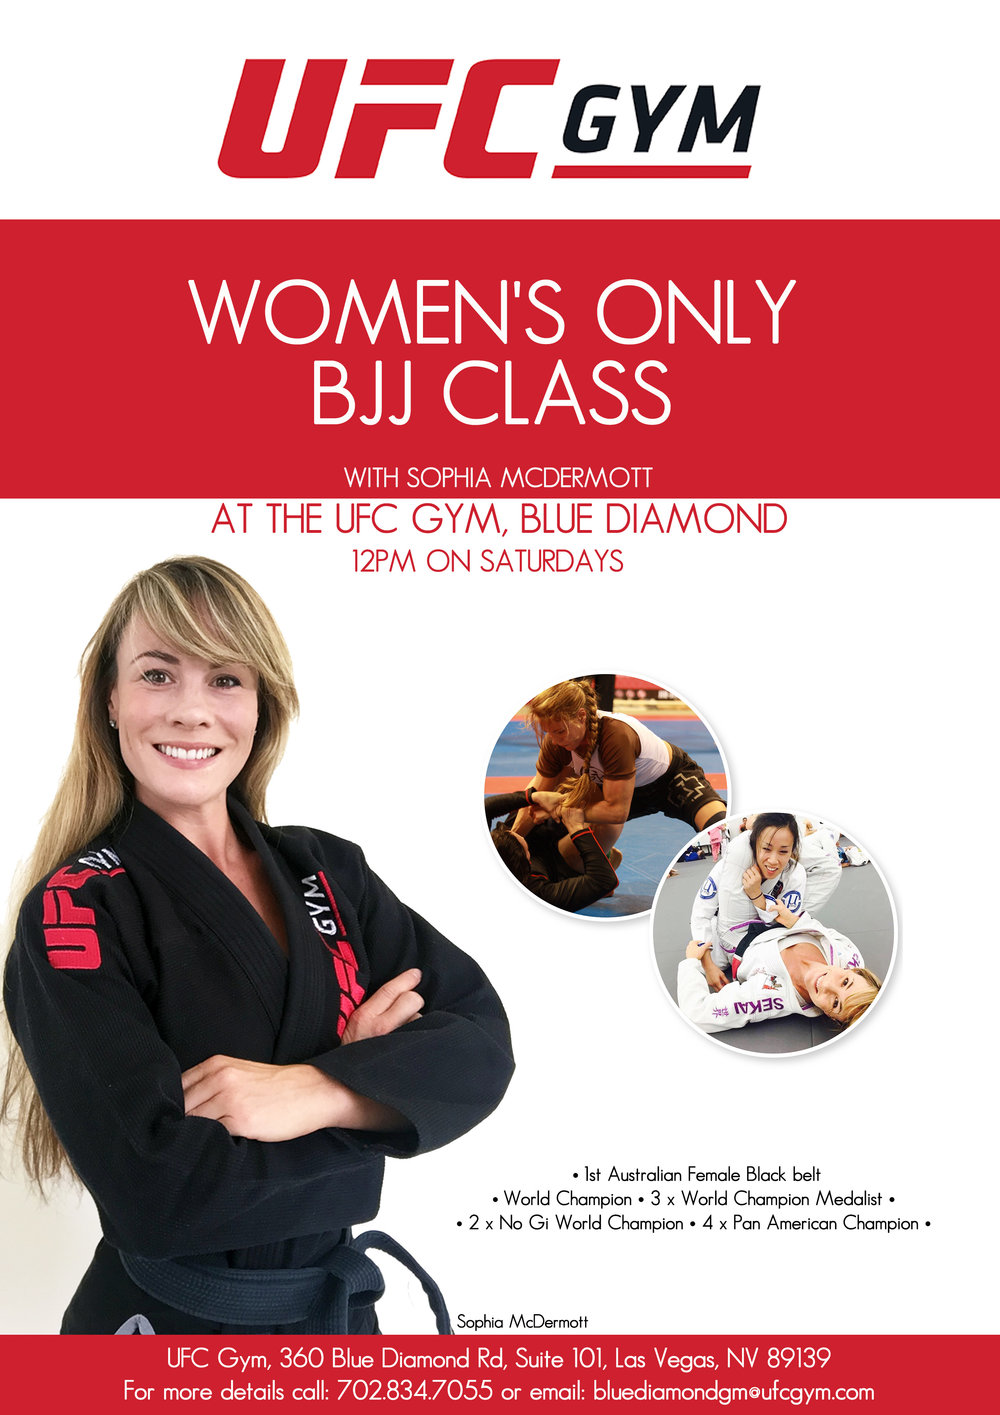 Sophia McDermott DrysdaleWomen's Only Bjj Classes Flyer.jpg